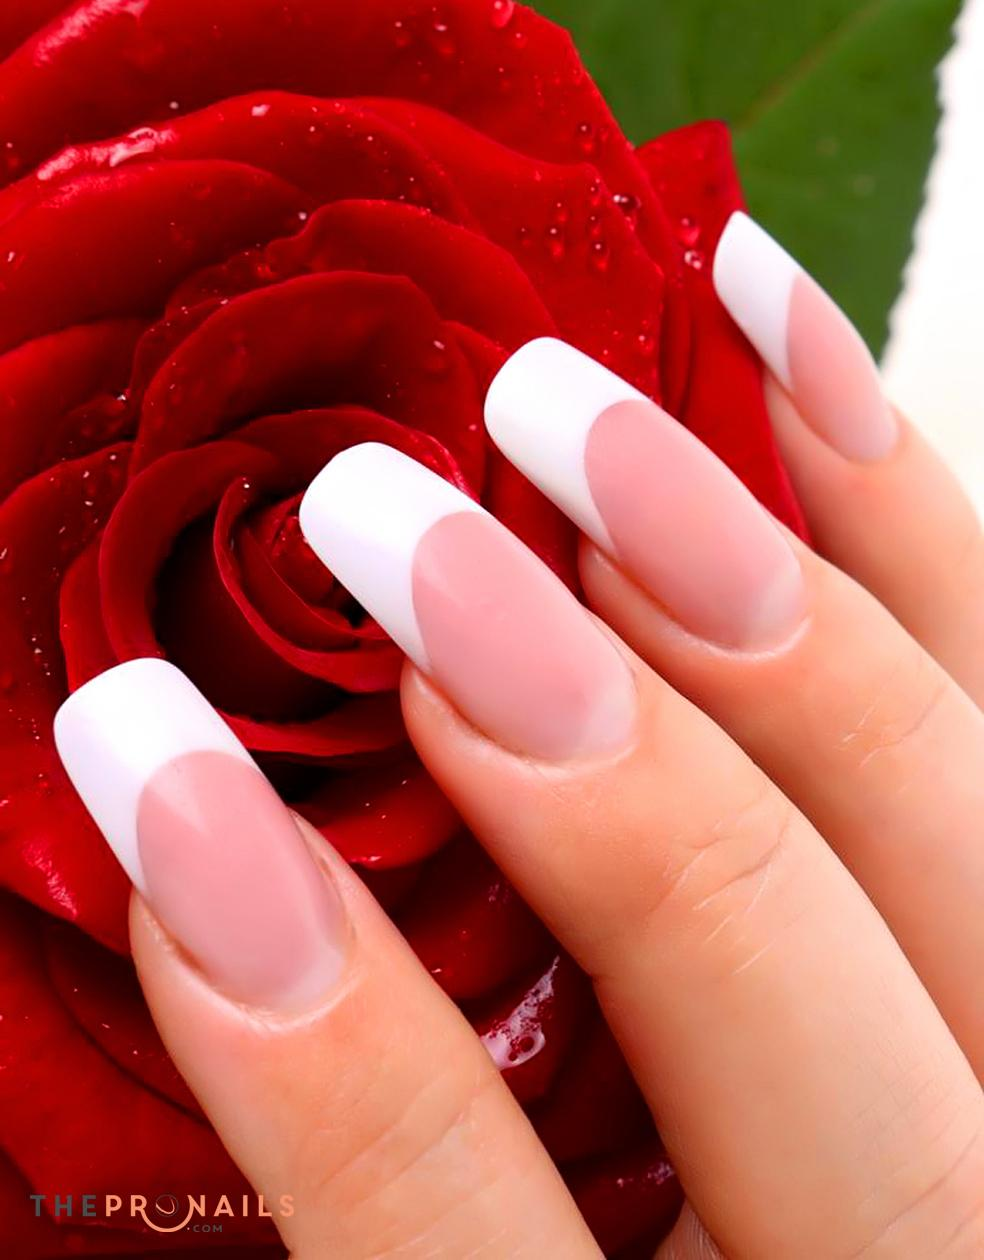 Thepronails are you considering having a full set of nails but have yet to know what is best suited for you we would like to recommend the acrylic for many reason solutioingenieria Image collections